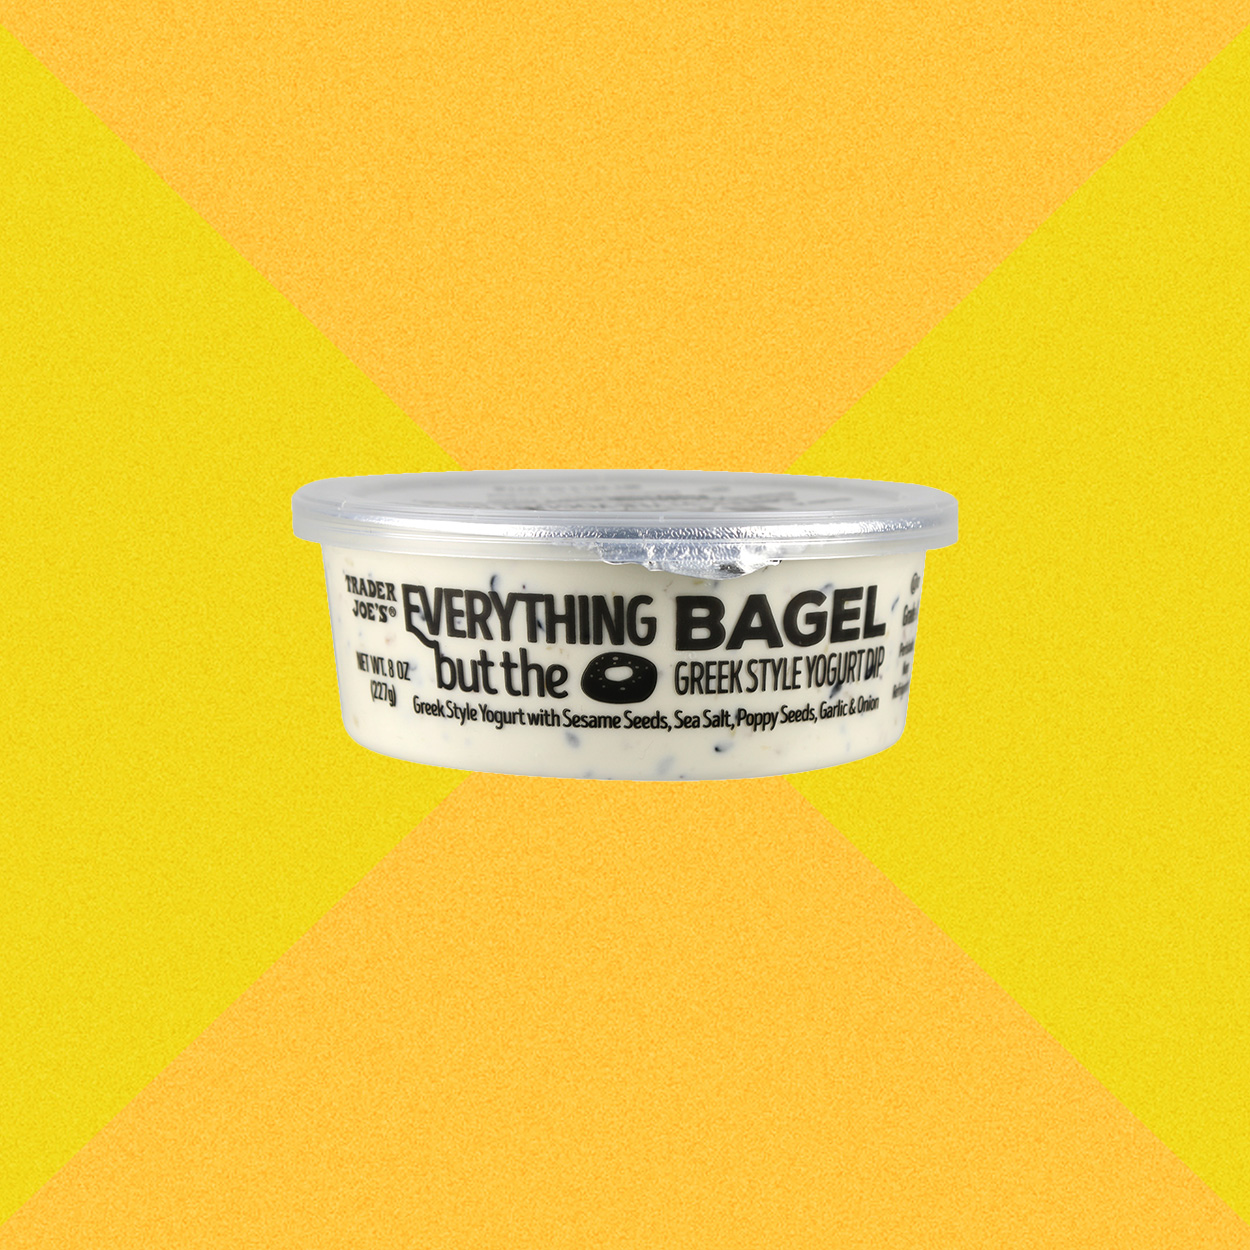 Trader Joe's Everything but the Bagel greek style yogurt dip in container